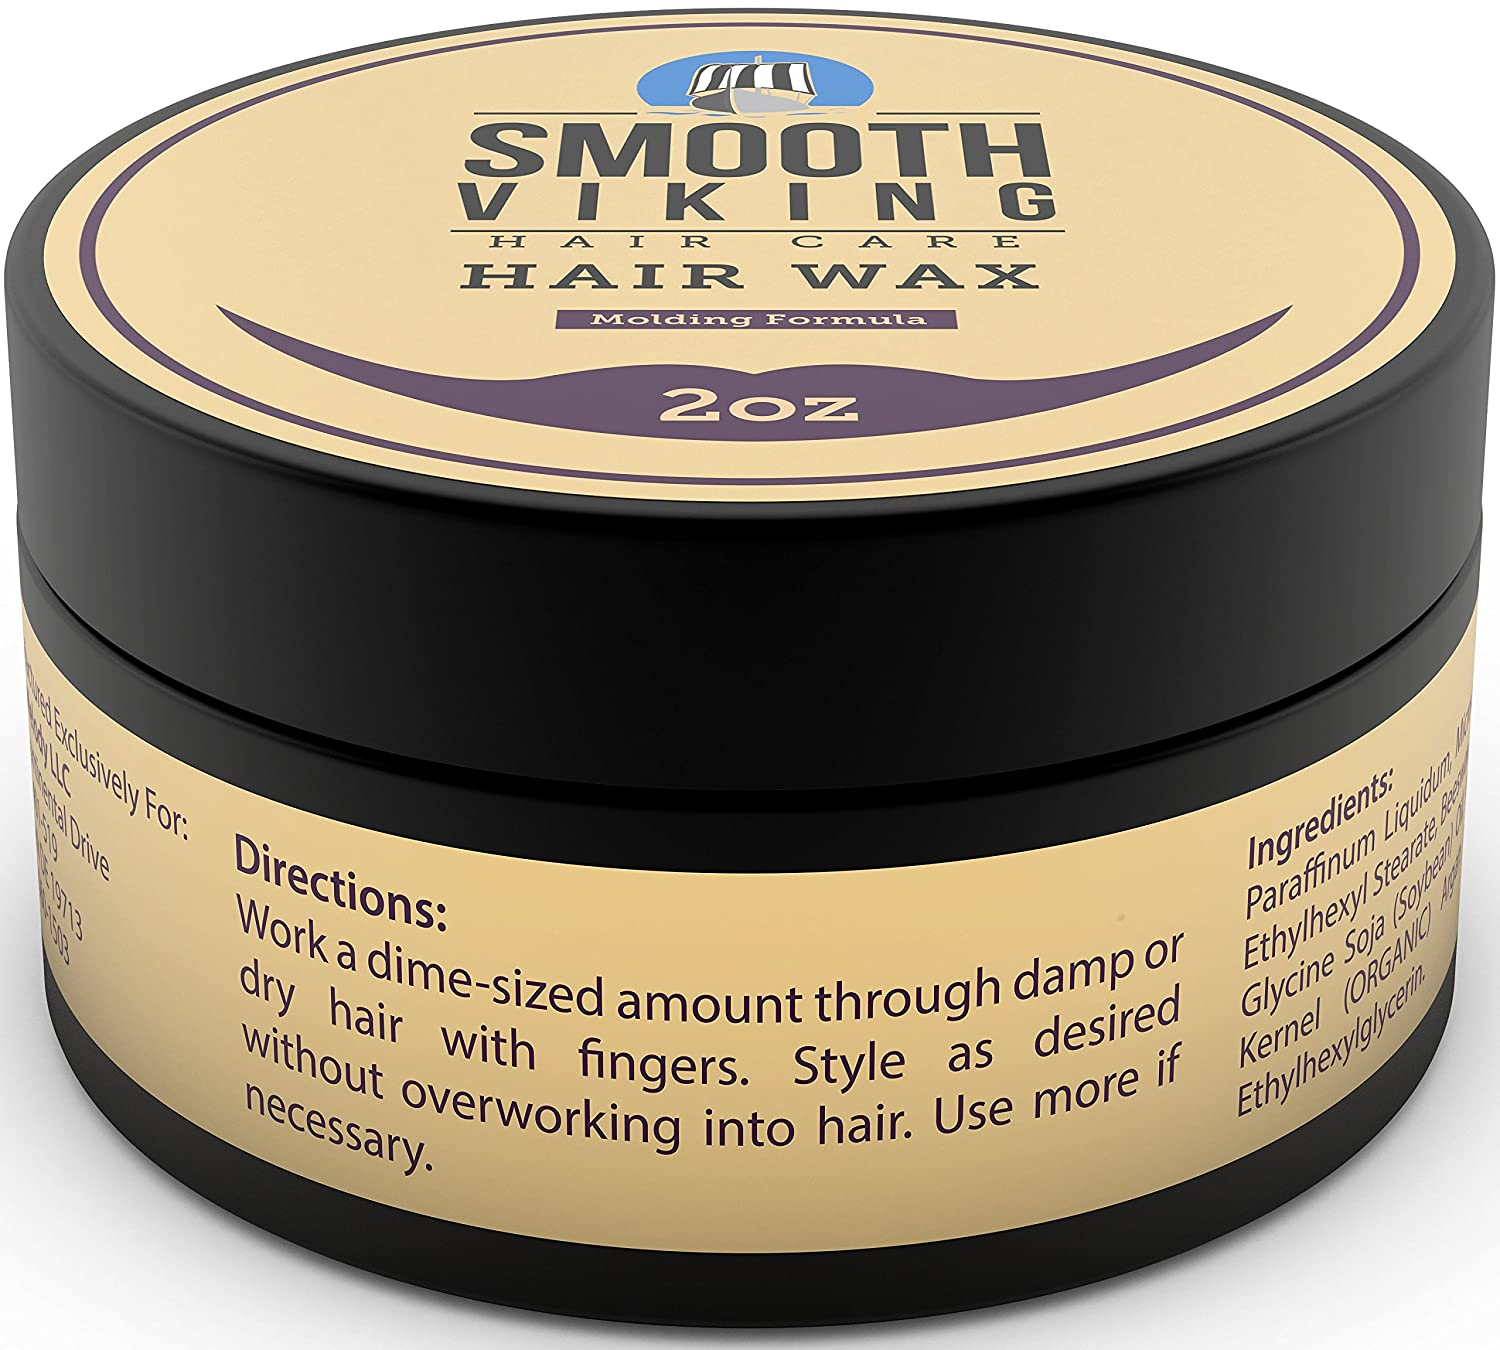 Hair Wax For Men   Best Hair Styling Formula For Modern Styling   Workable  U0026 Pliable Product For Added Texture U0026 Shine   Works On All Hair Types, ...